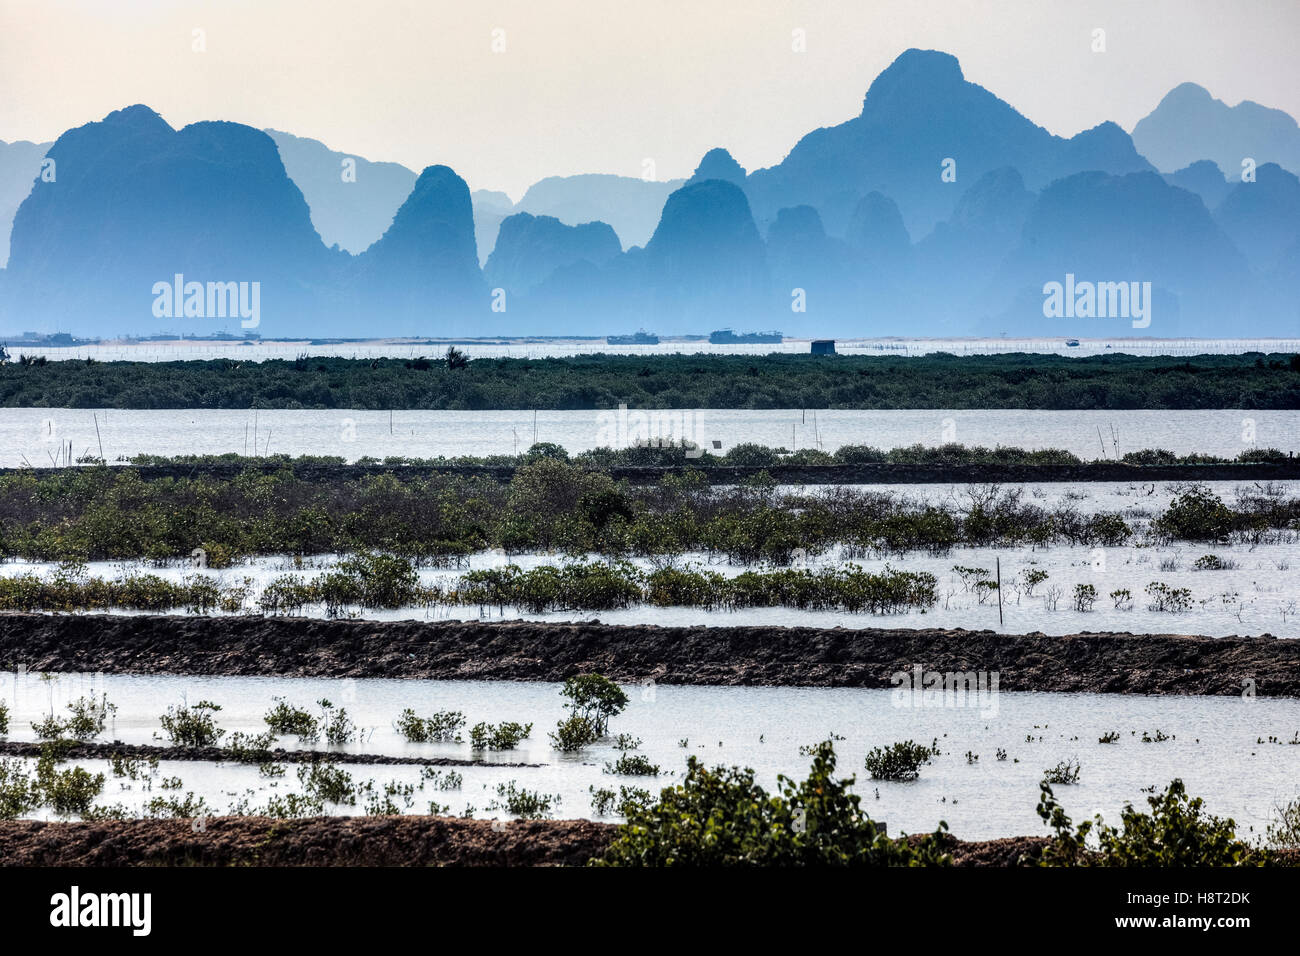 pearl farm at Halong Bay, Vietnam, Indochina, Asia Stock Photo